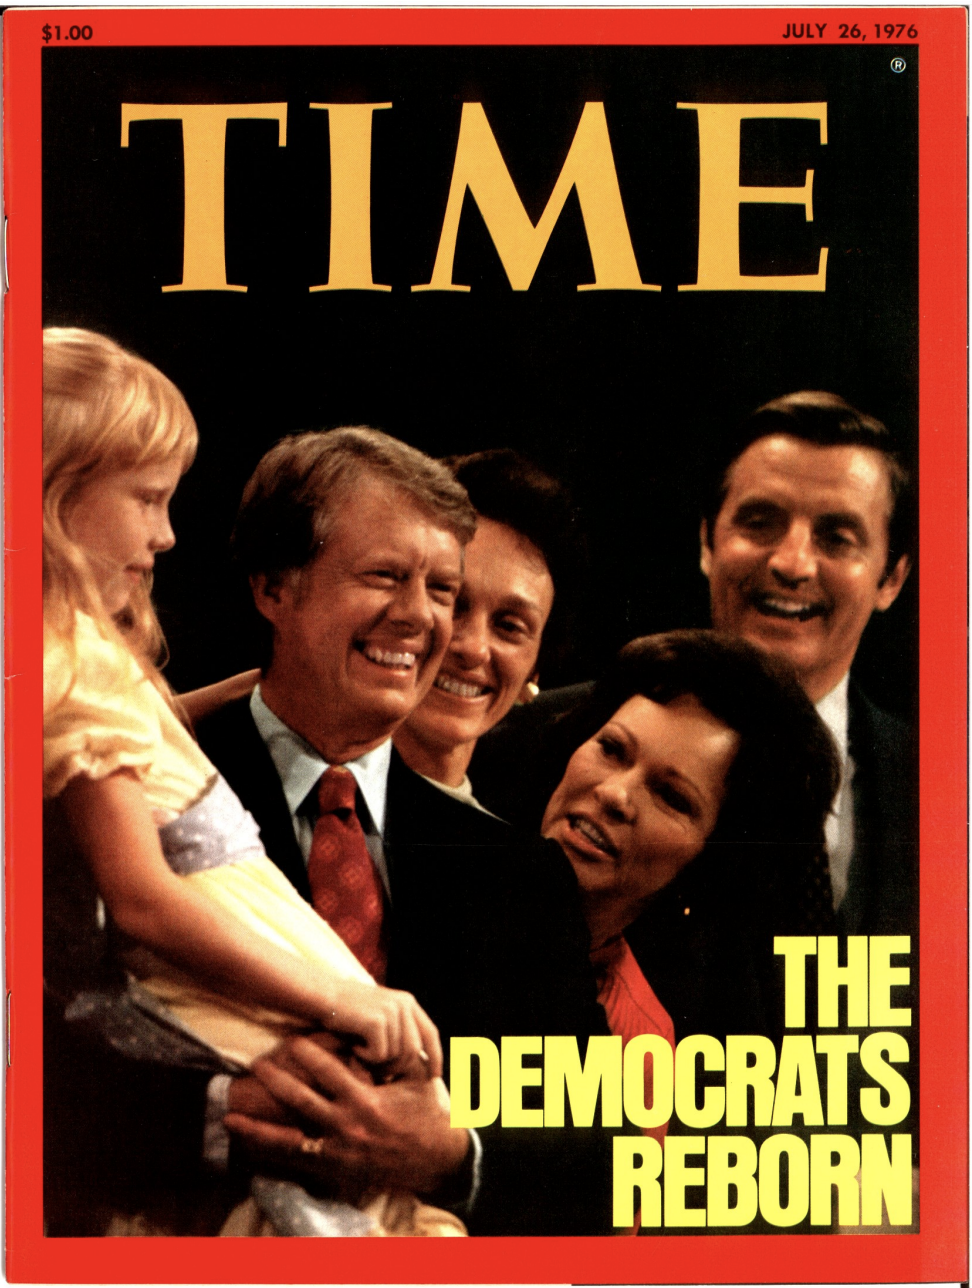 The cover of TIME Magazine the week of July 26, 1976